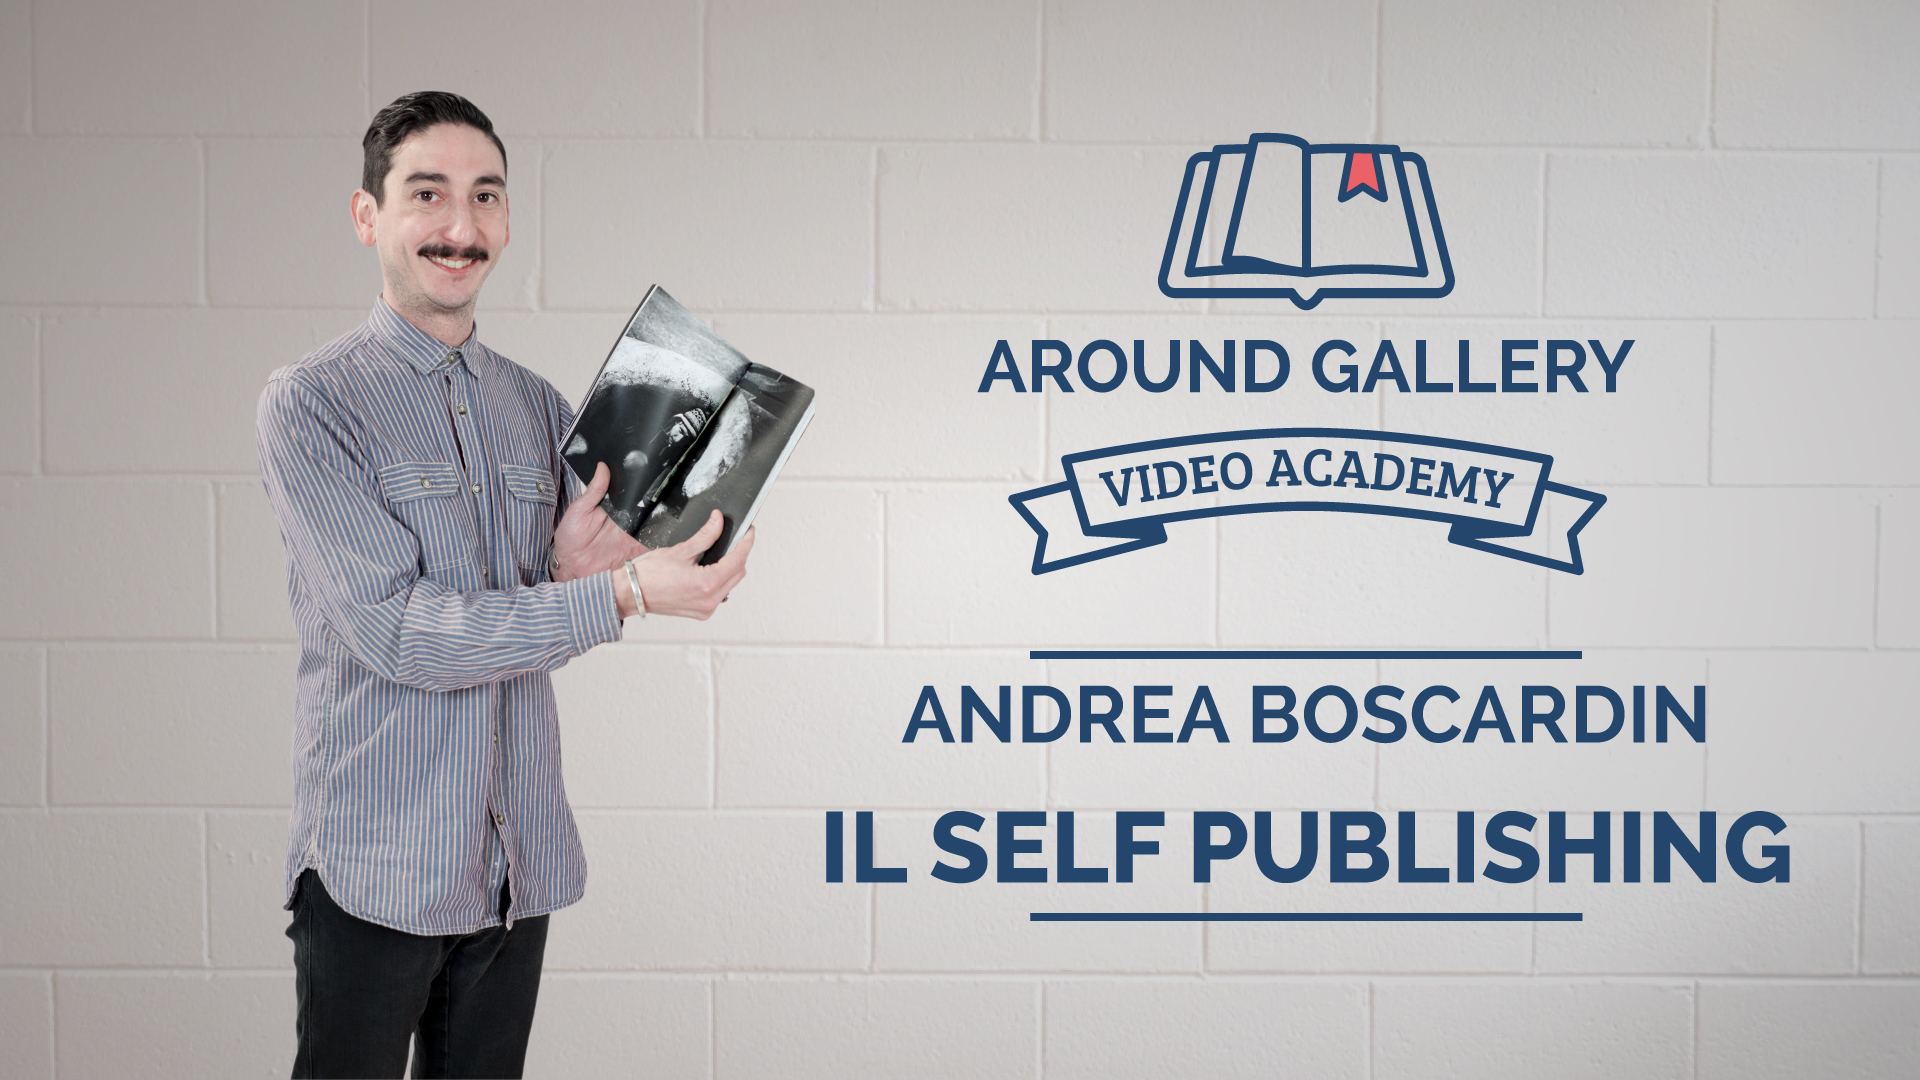 Il Self Publishing